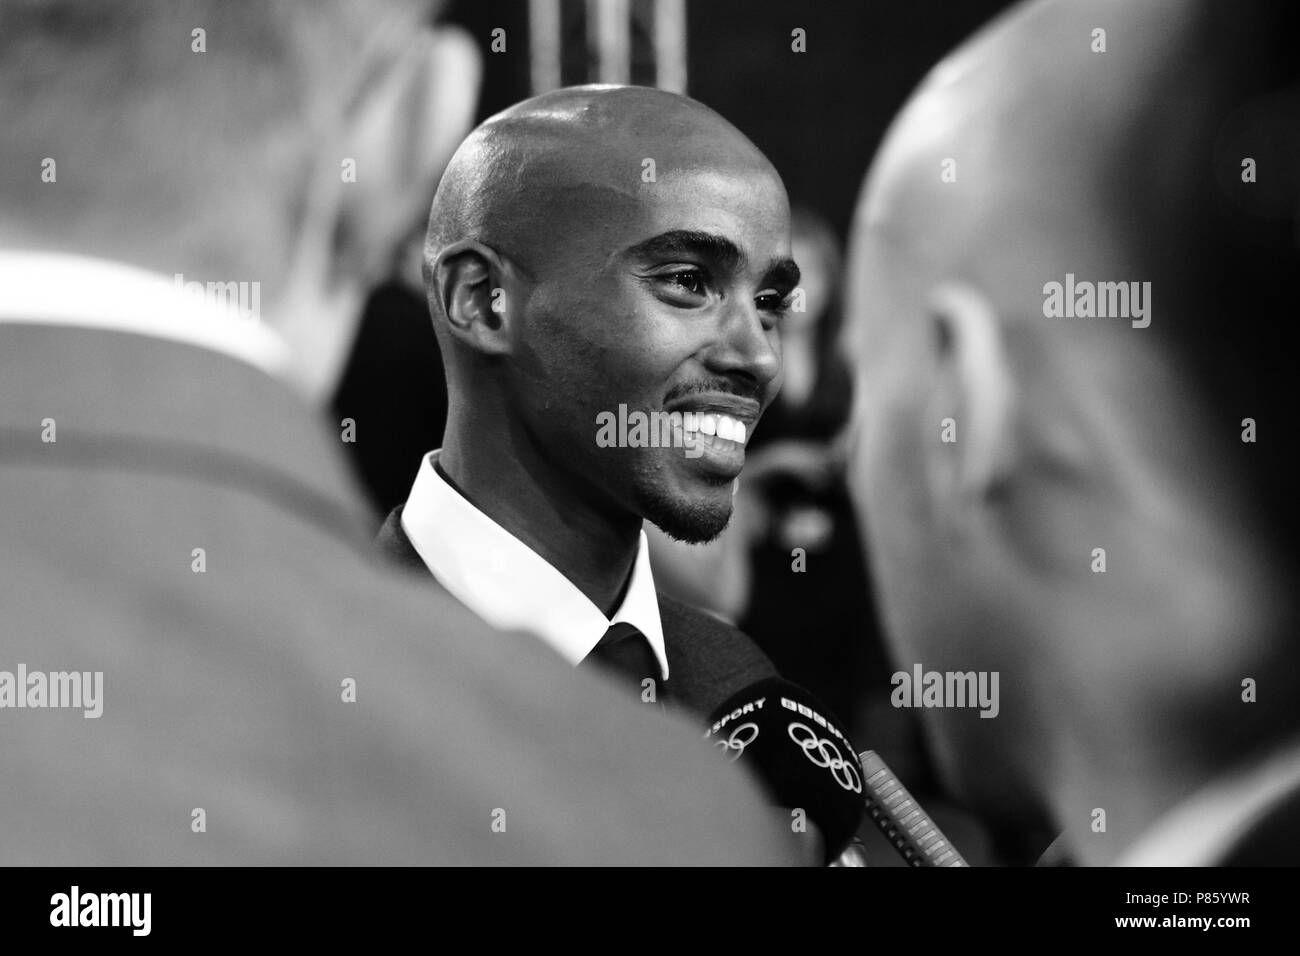 Mo Farah arrives at the Excel Centre in London for the BBC Sports Personality of the Year Awards 2012 , London. 16 December 2012 June 2012 --- Image by © Paul Cunningham - Stock Image